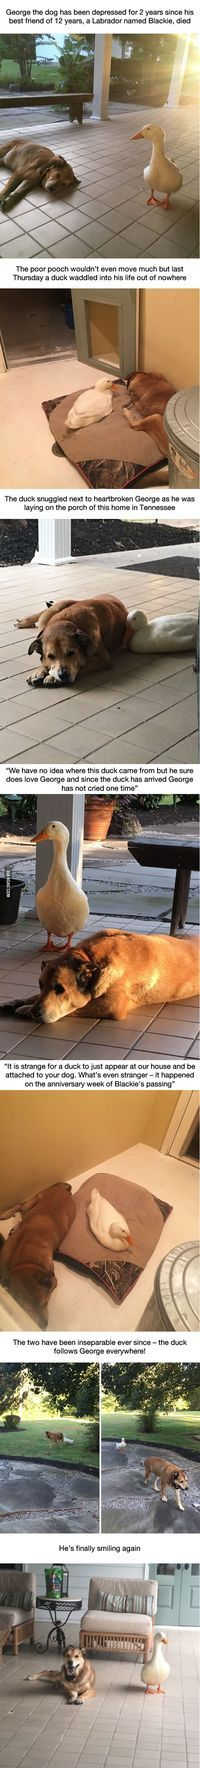 This dog was depressed for 2 years after his best friend died, but then this duck showed up...